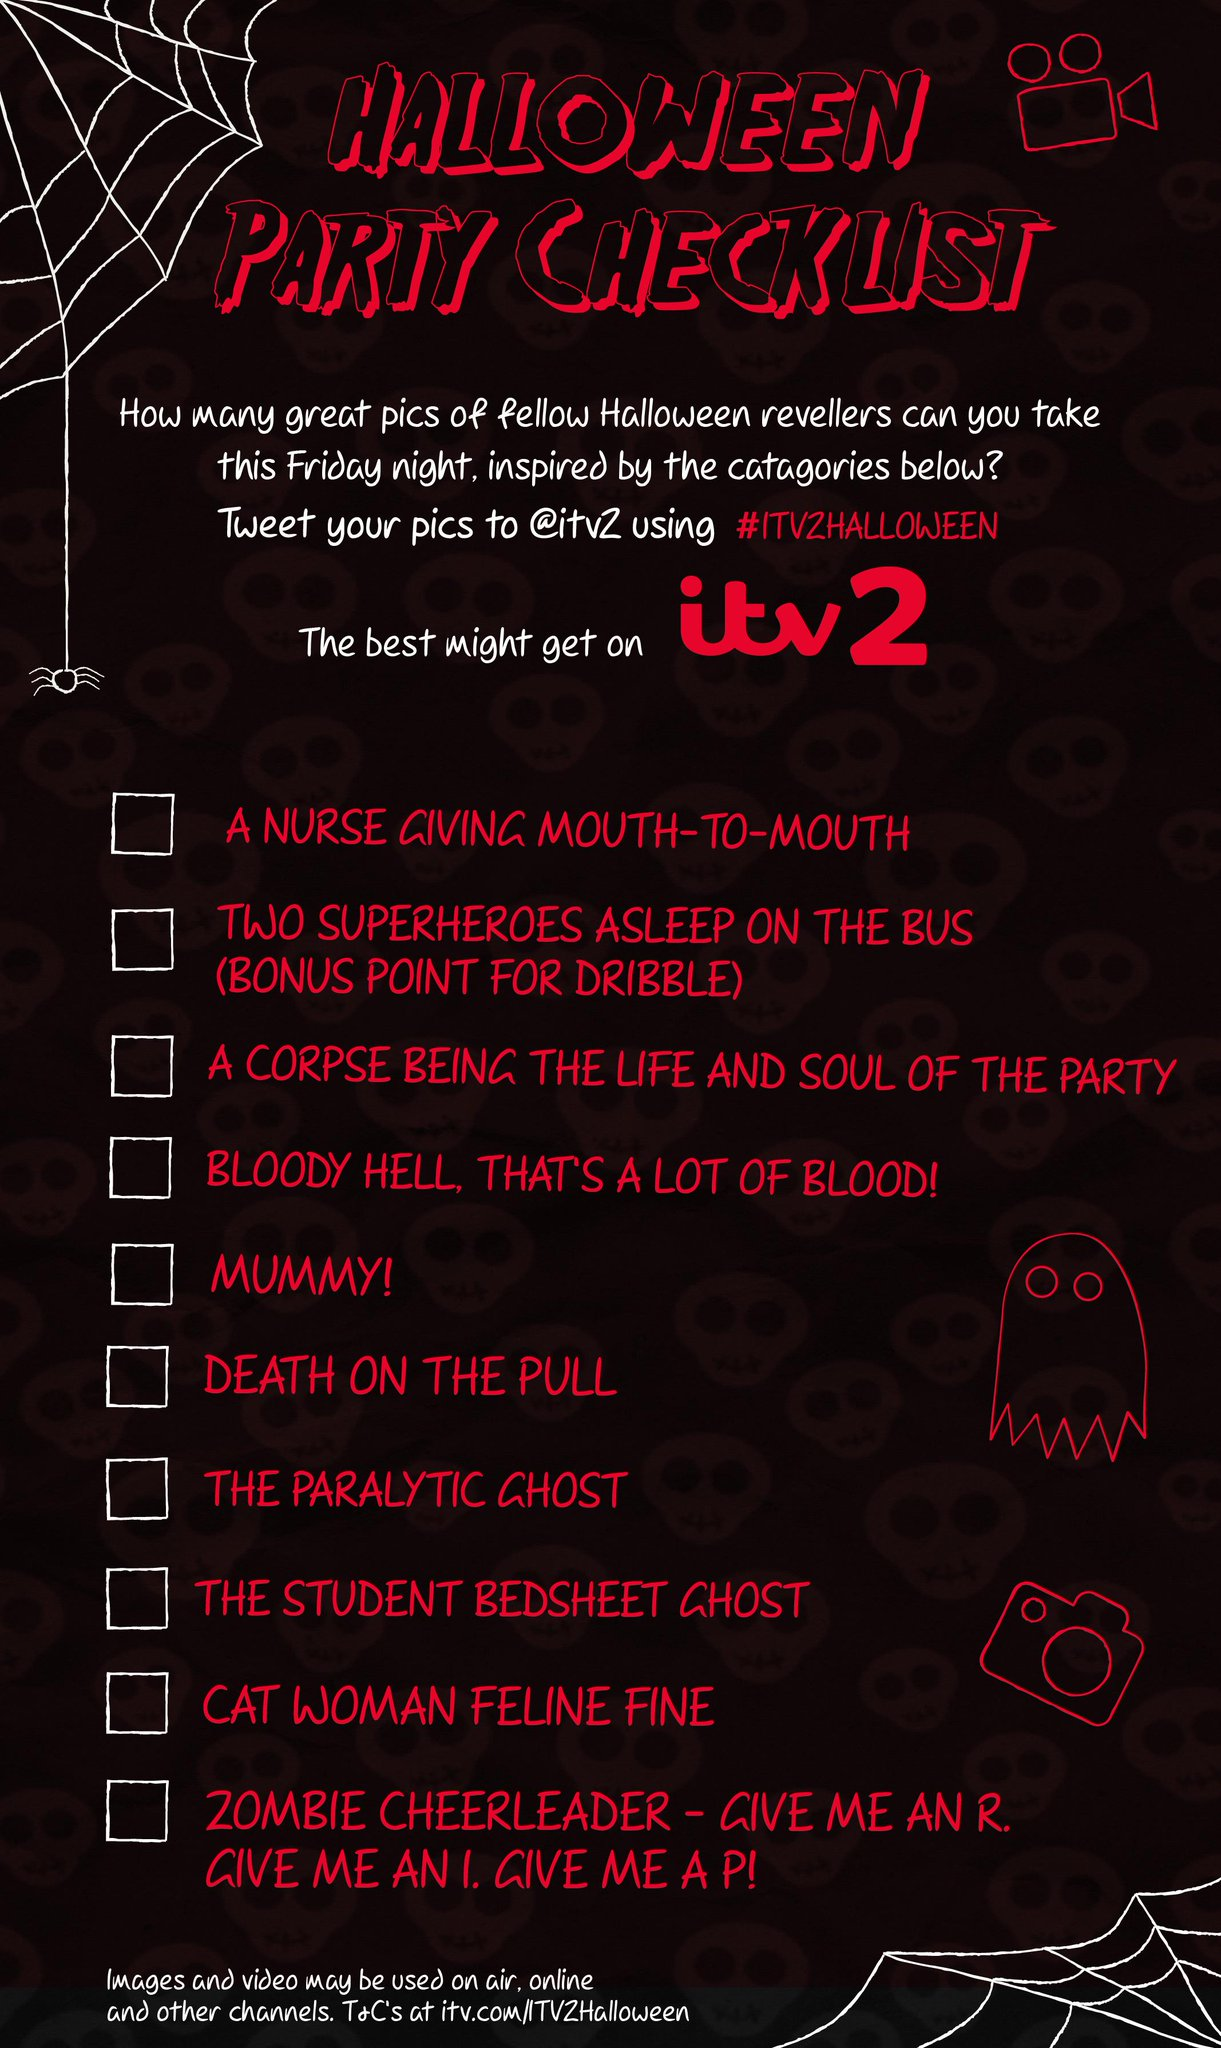 Want YOUR scary pics on TV? Tweet one from our #ITV2Halloween list tonight and you just might! http://t.co/oTT5FUUnpD http://t.co/42TfF68jo5